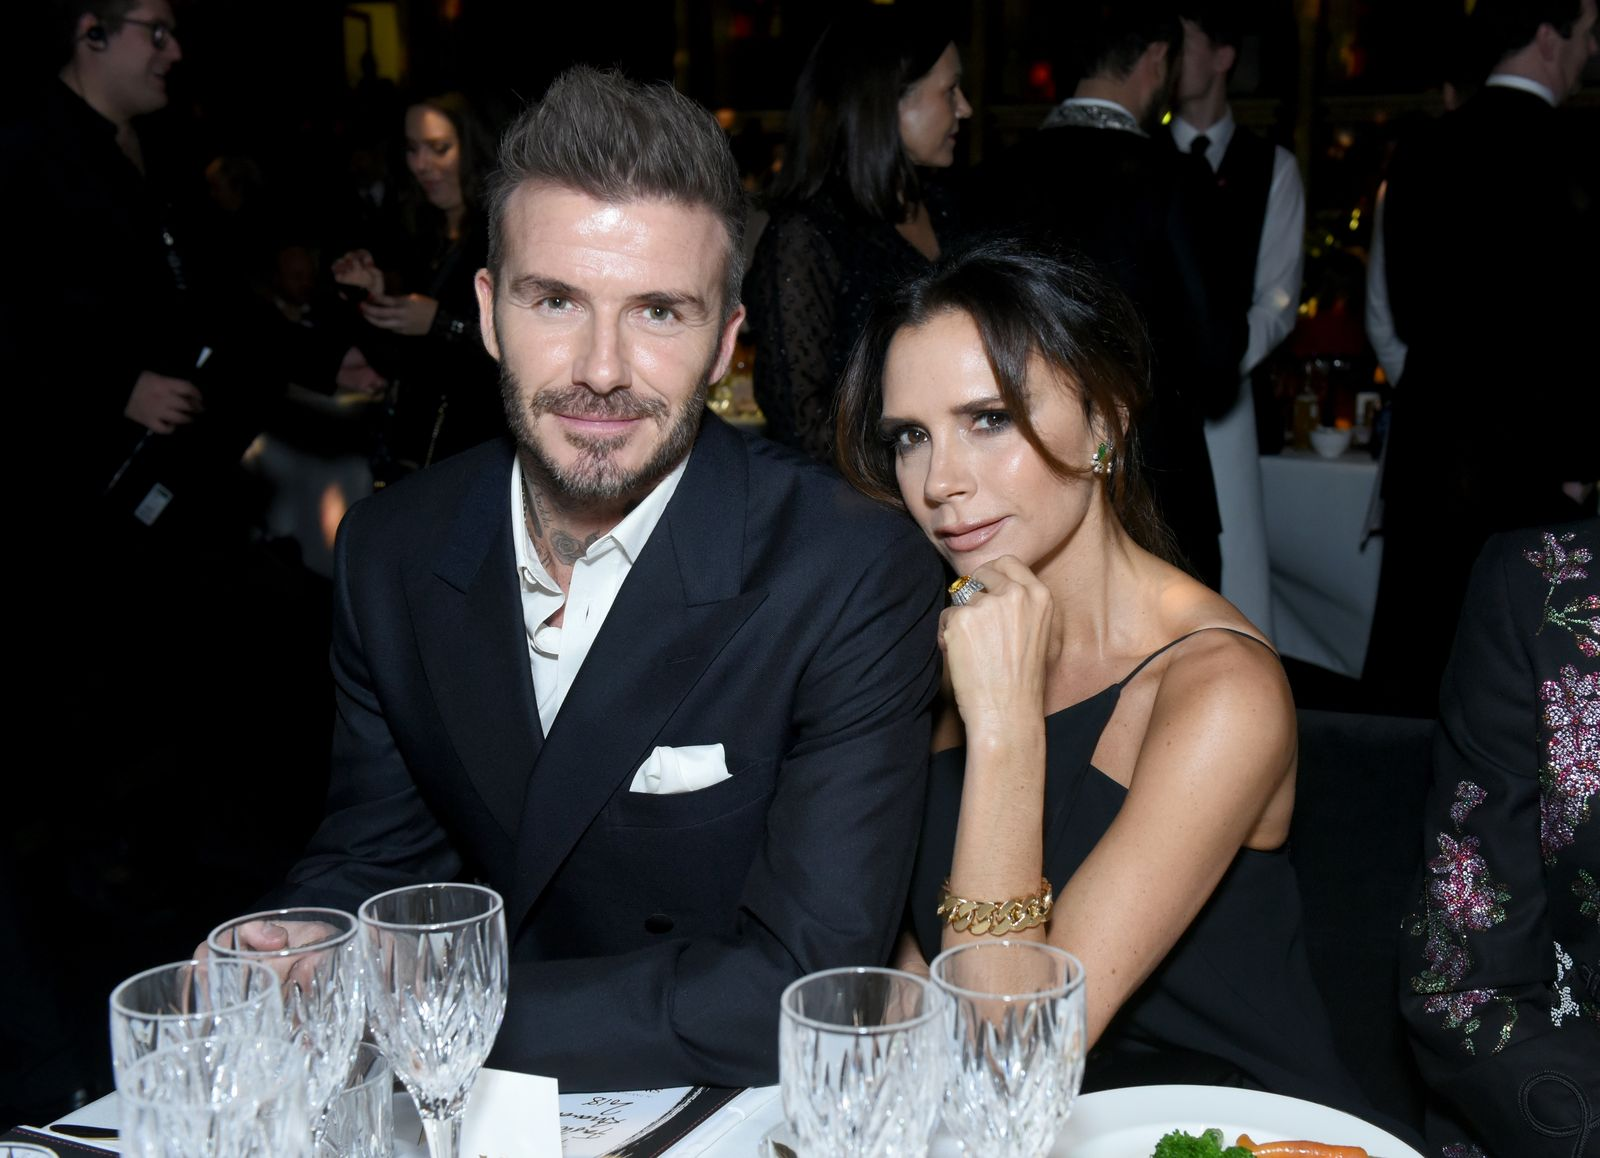 David Beckham and Victoria Beckham at The Fashion Awards 2018 In Partnership With Swarovski at Royal Albert Hall on December 10, 2018 in London, England. | Photo: Getty Images